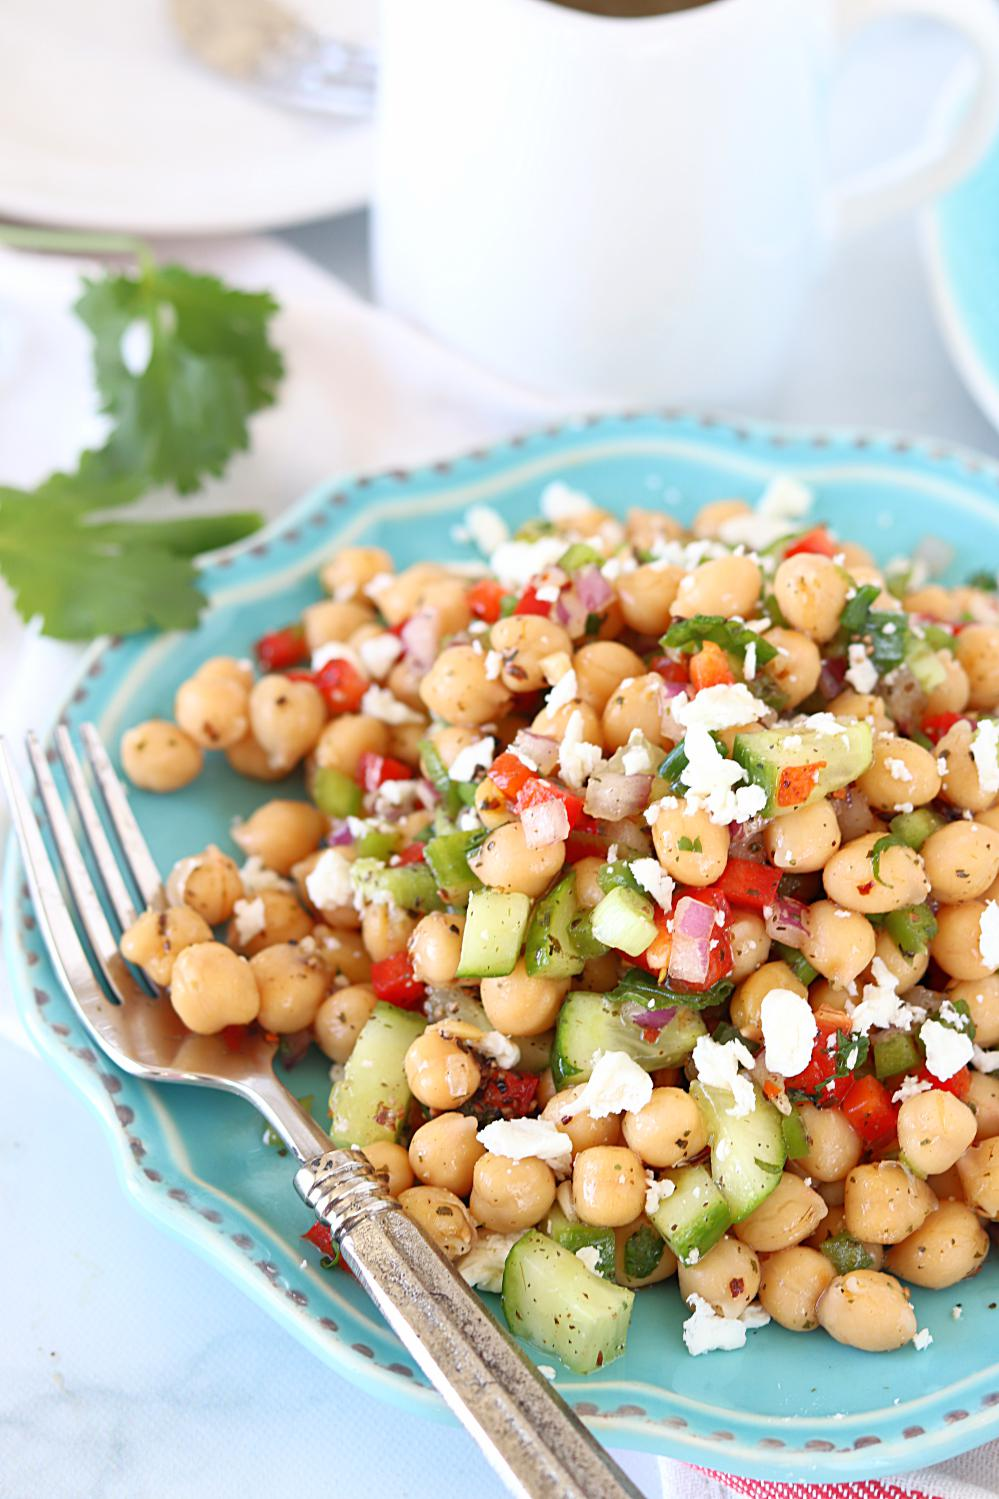 How to make veggie chickpea salad